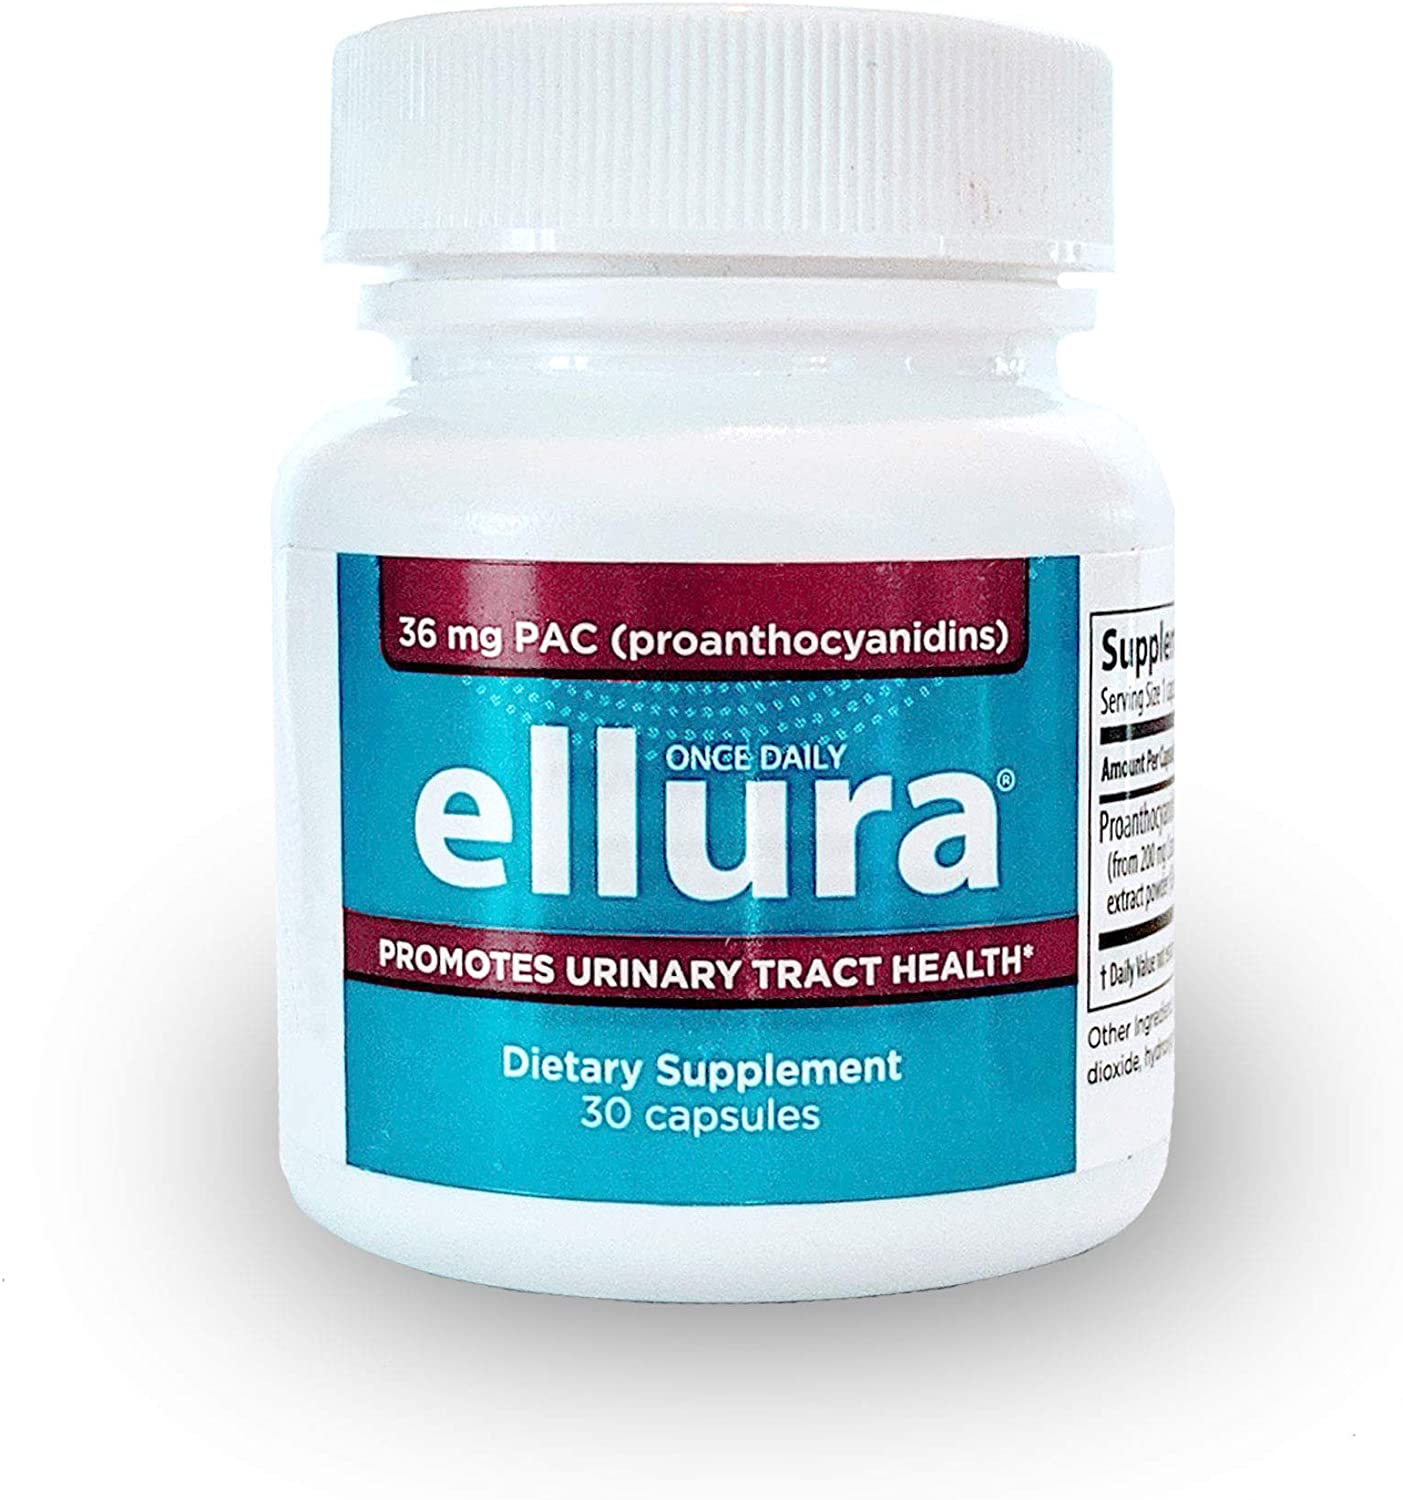 ellura 36 mg PAC (30 caps) – Highly Effective Urinary Tract Supplement: Health & Personal Care